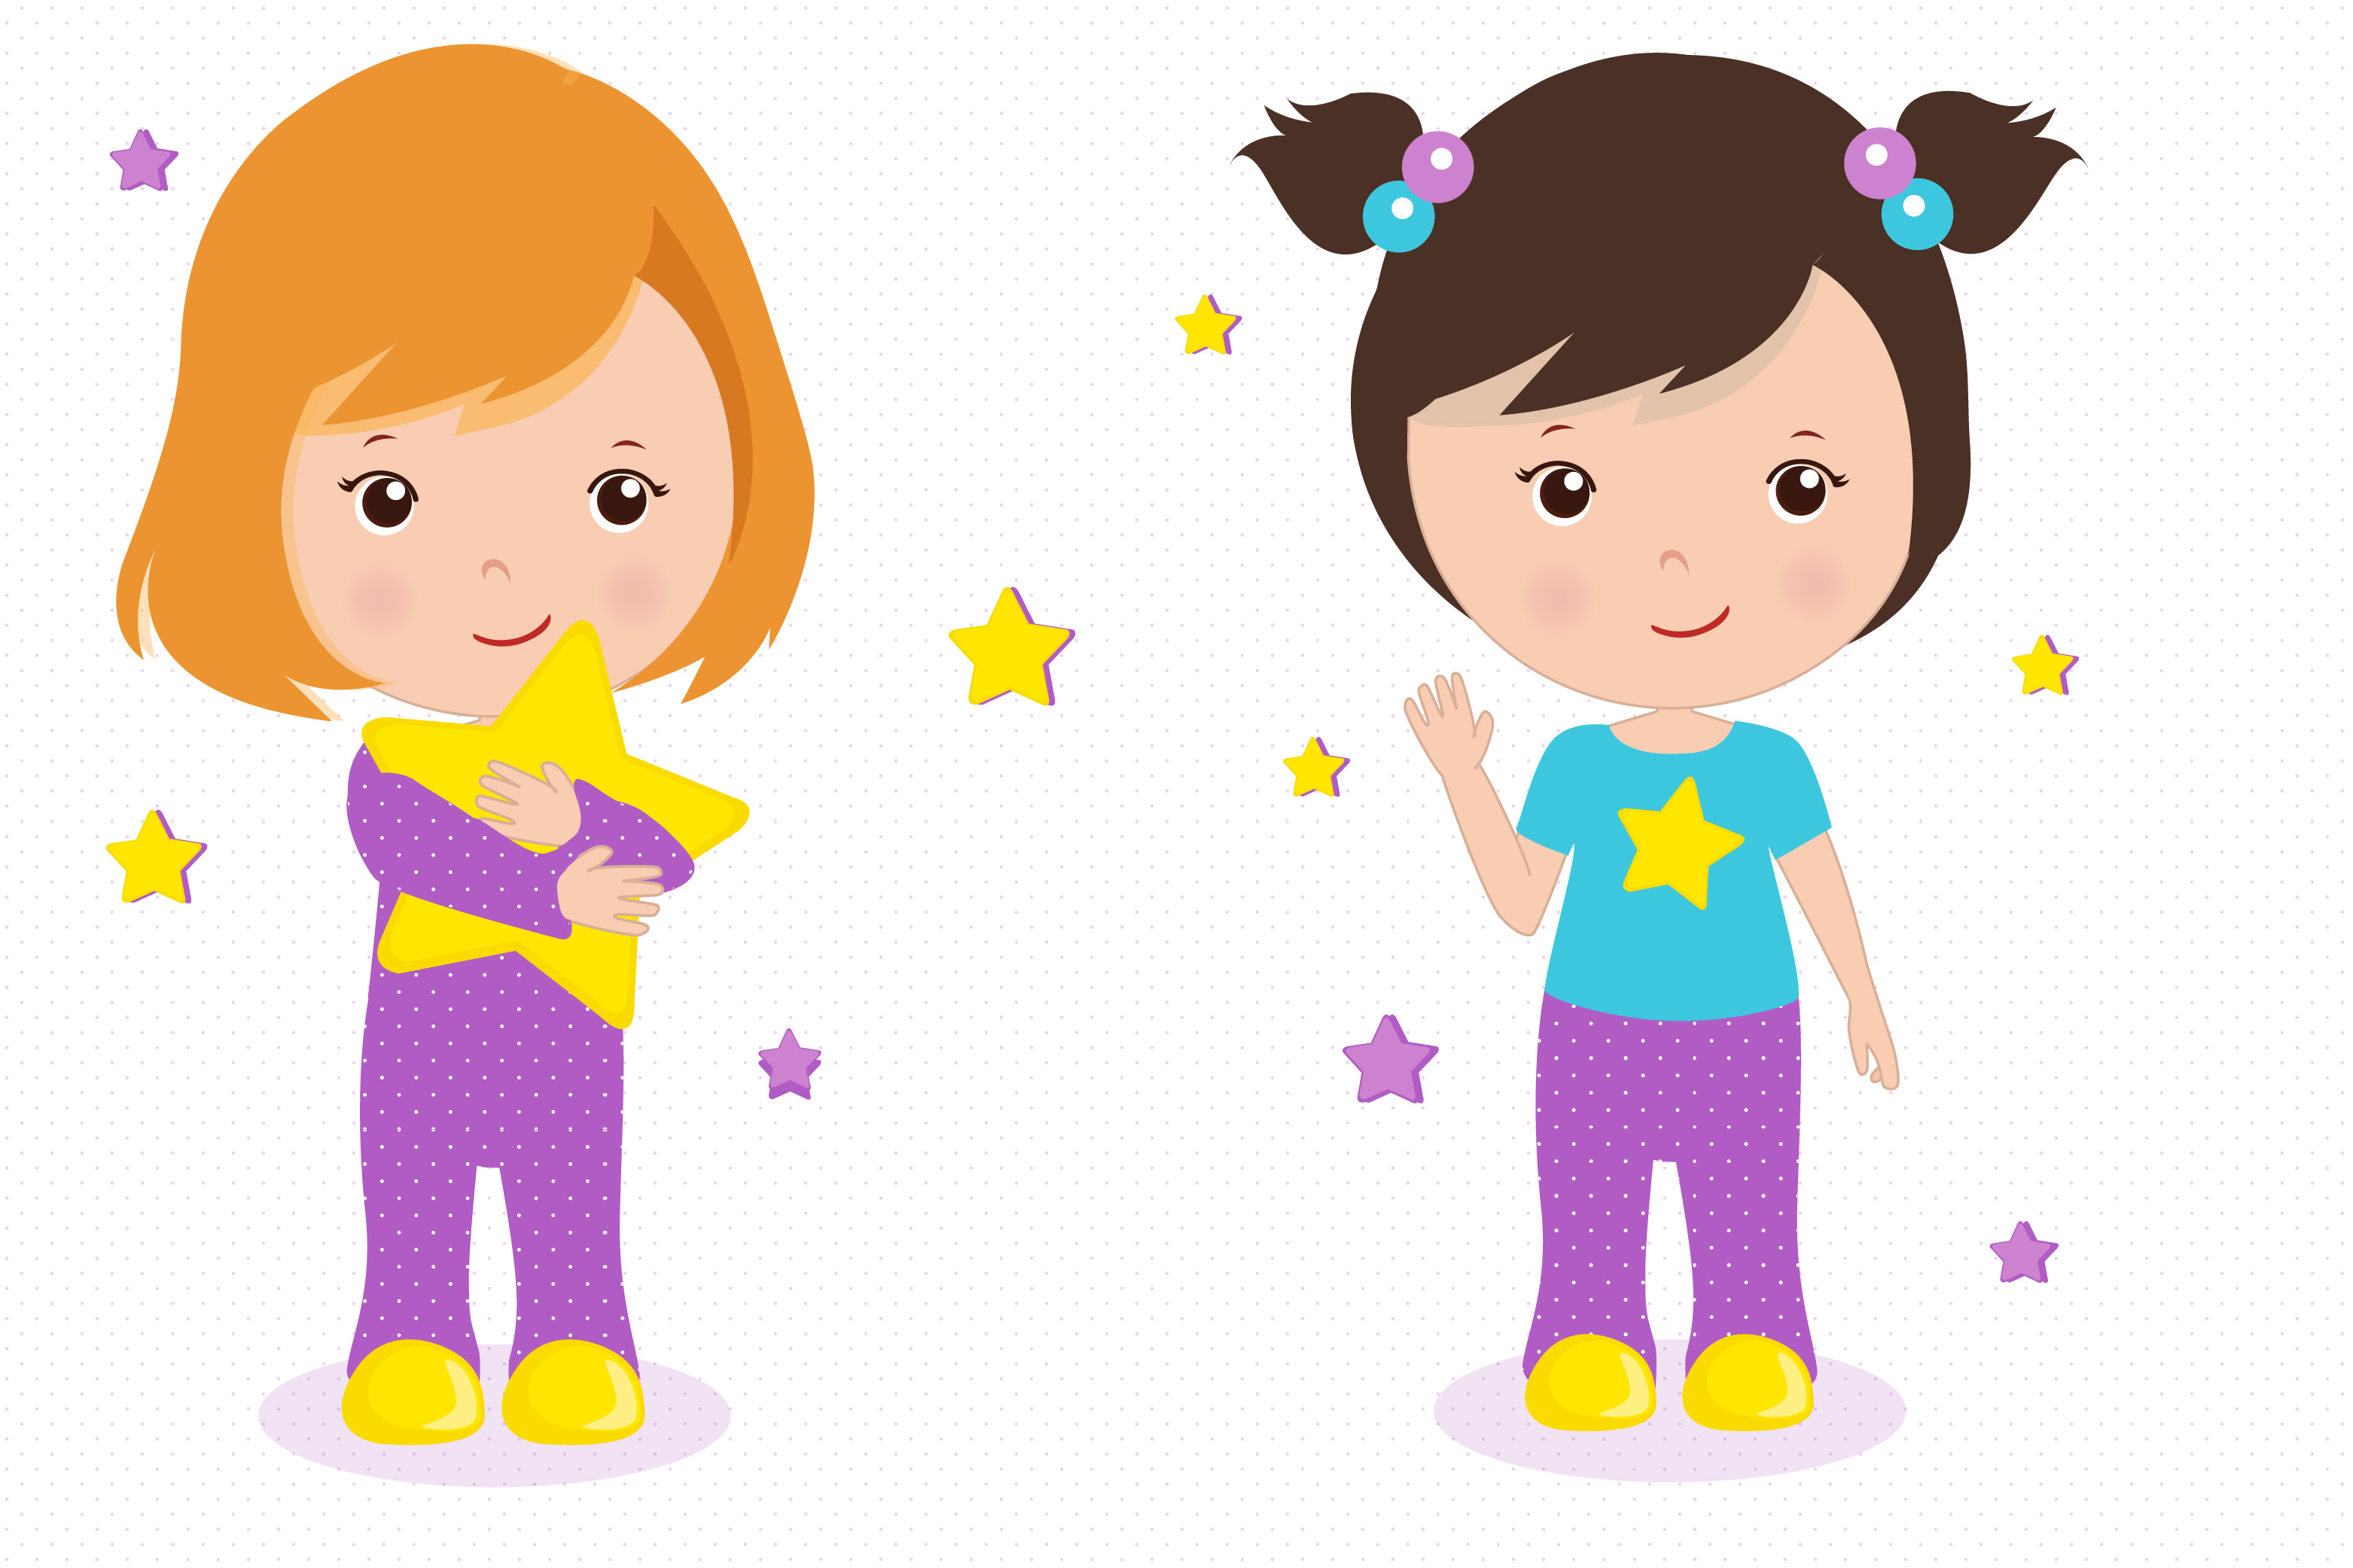 little girl clipart at getdrawings com free for personal use rh getdrawings com girl clipart black and white girl clip art black and white